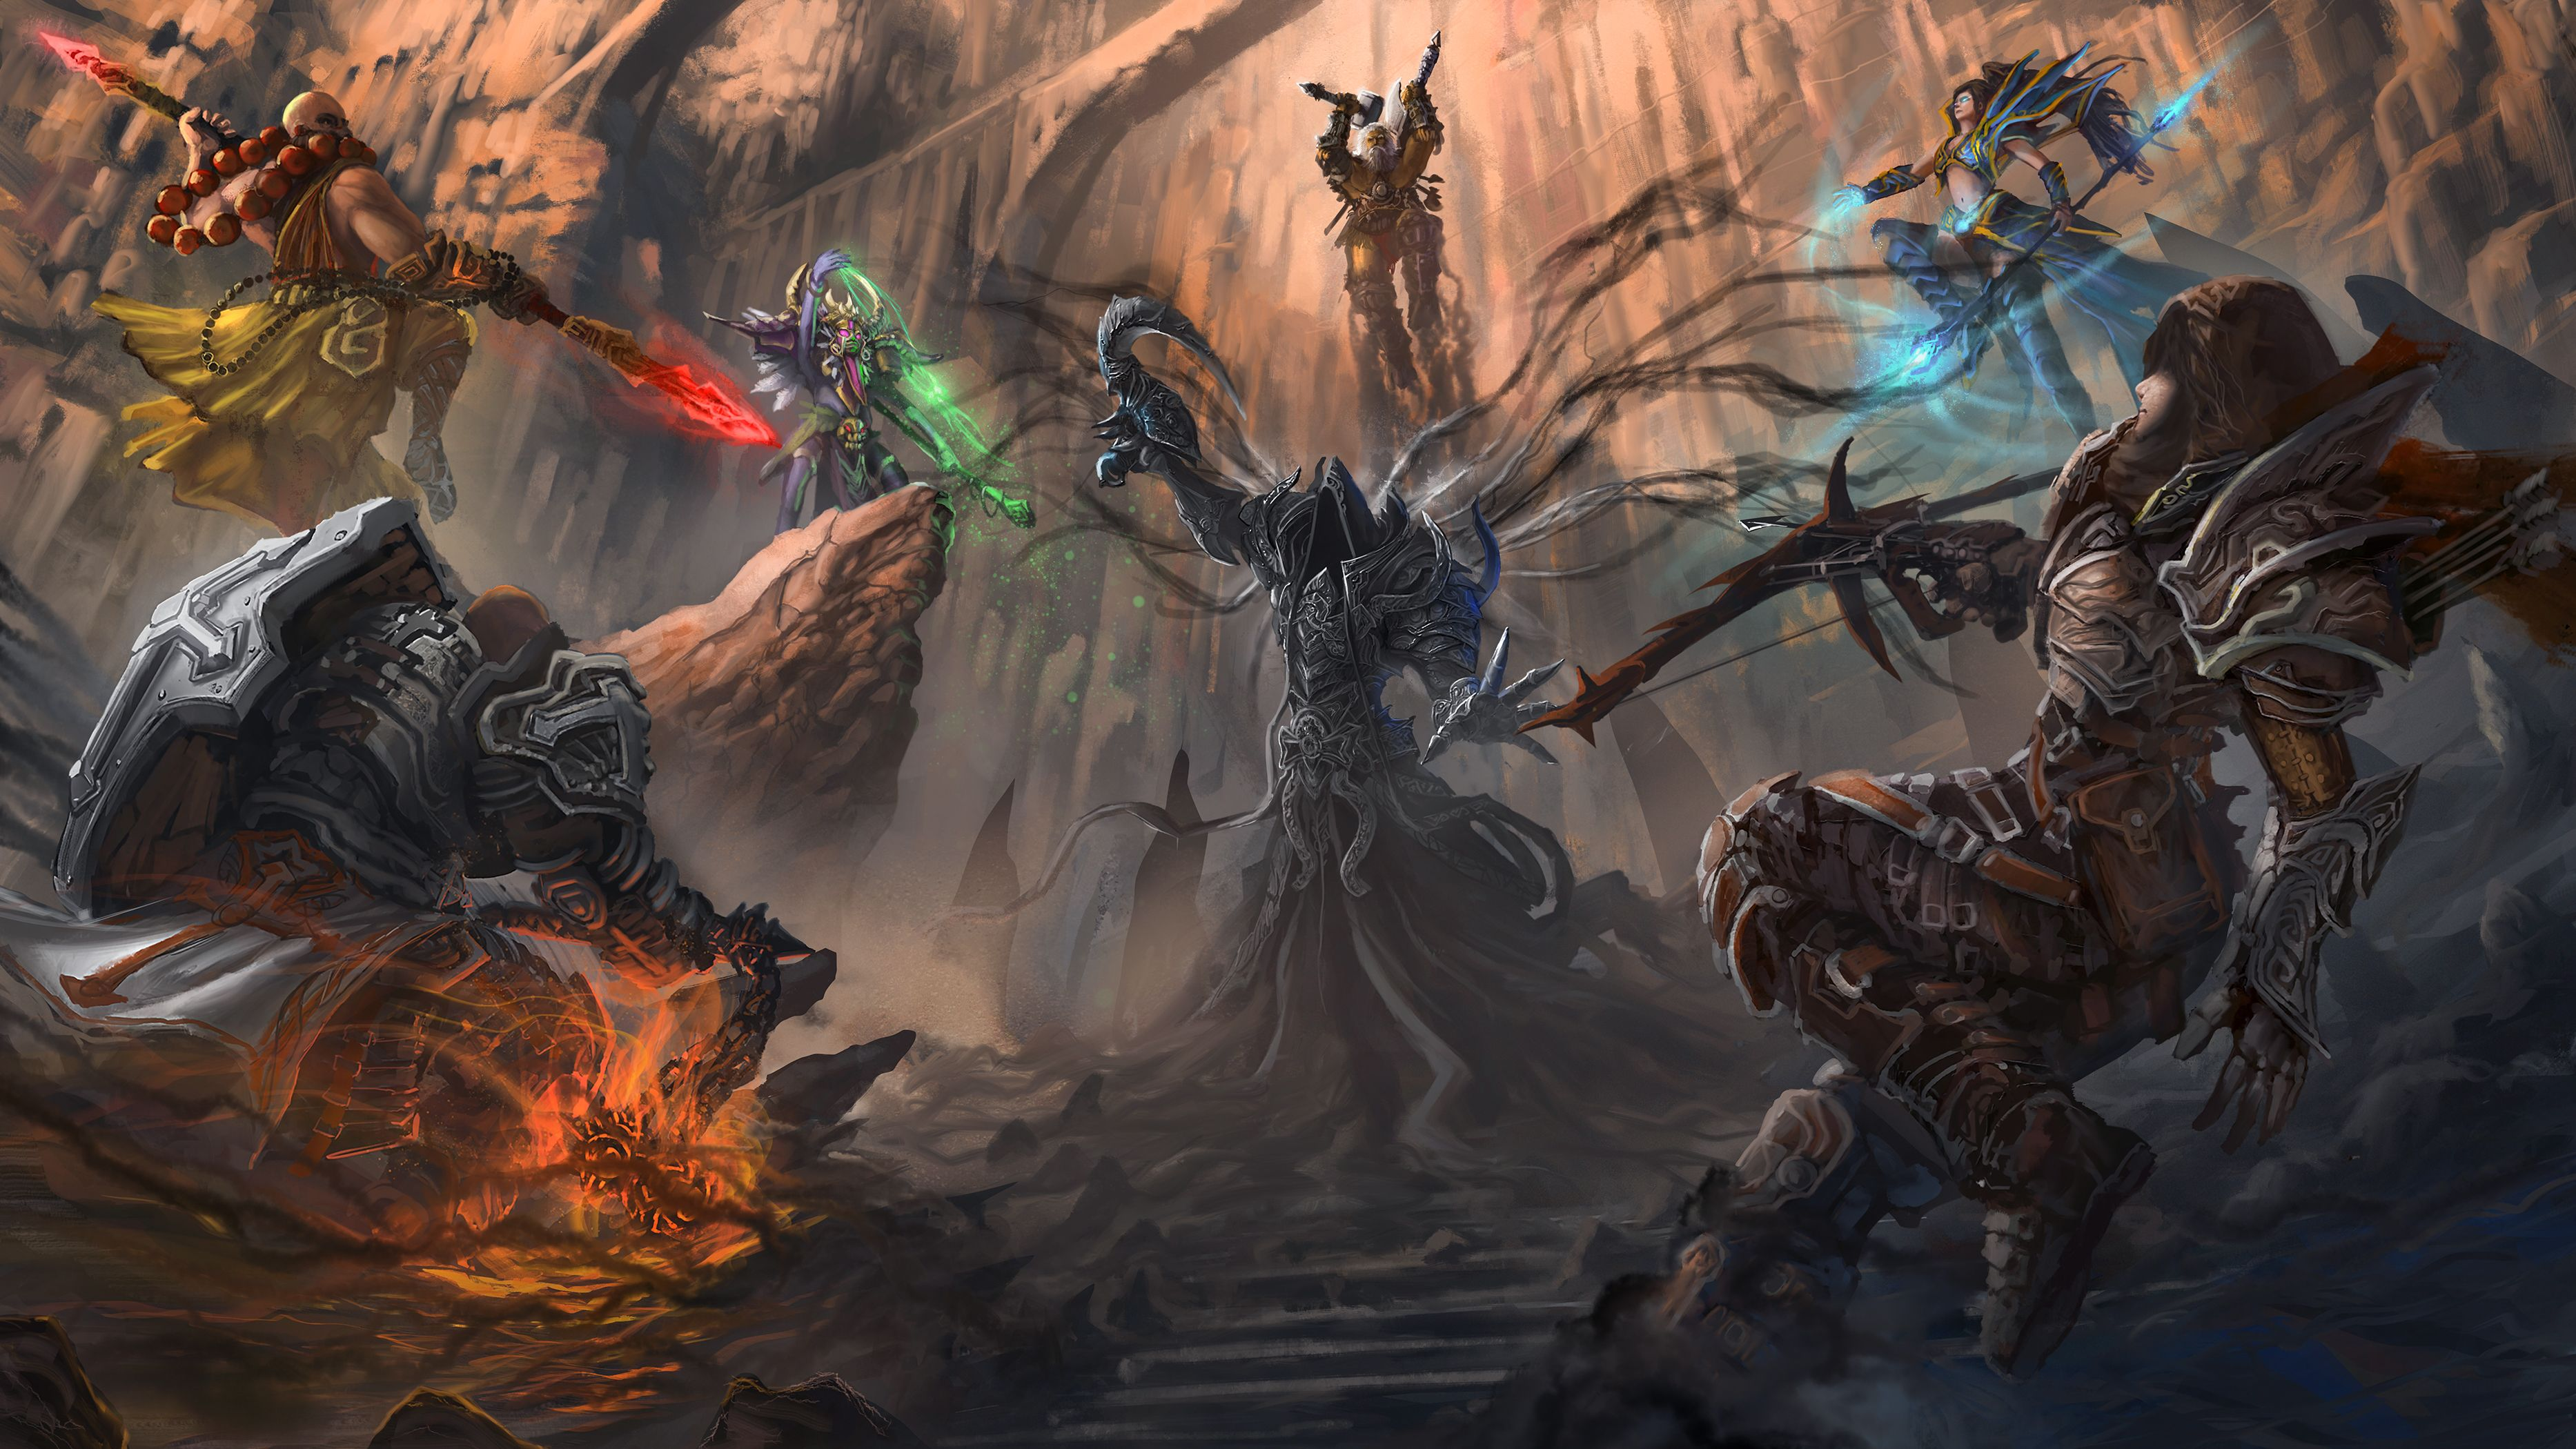 Pin By The Steve On Diablo Concept Art Drawing Art Fantasy Pictures